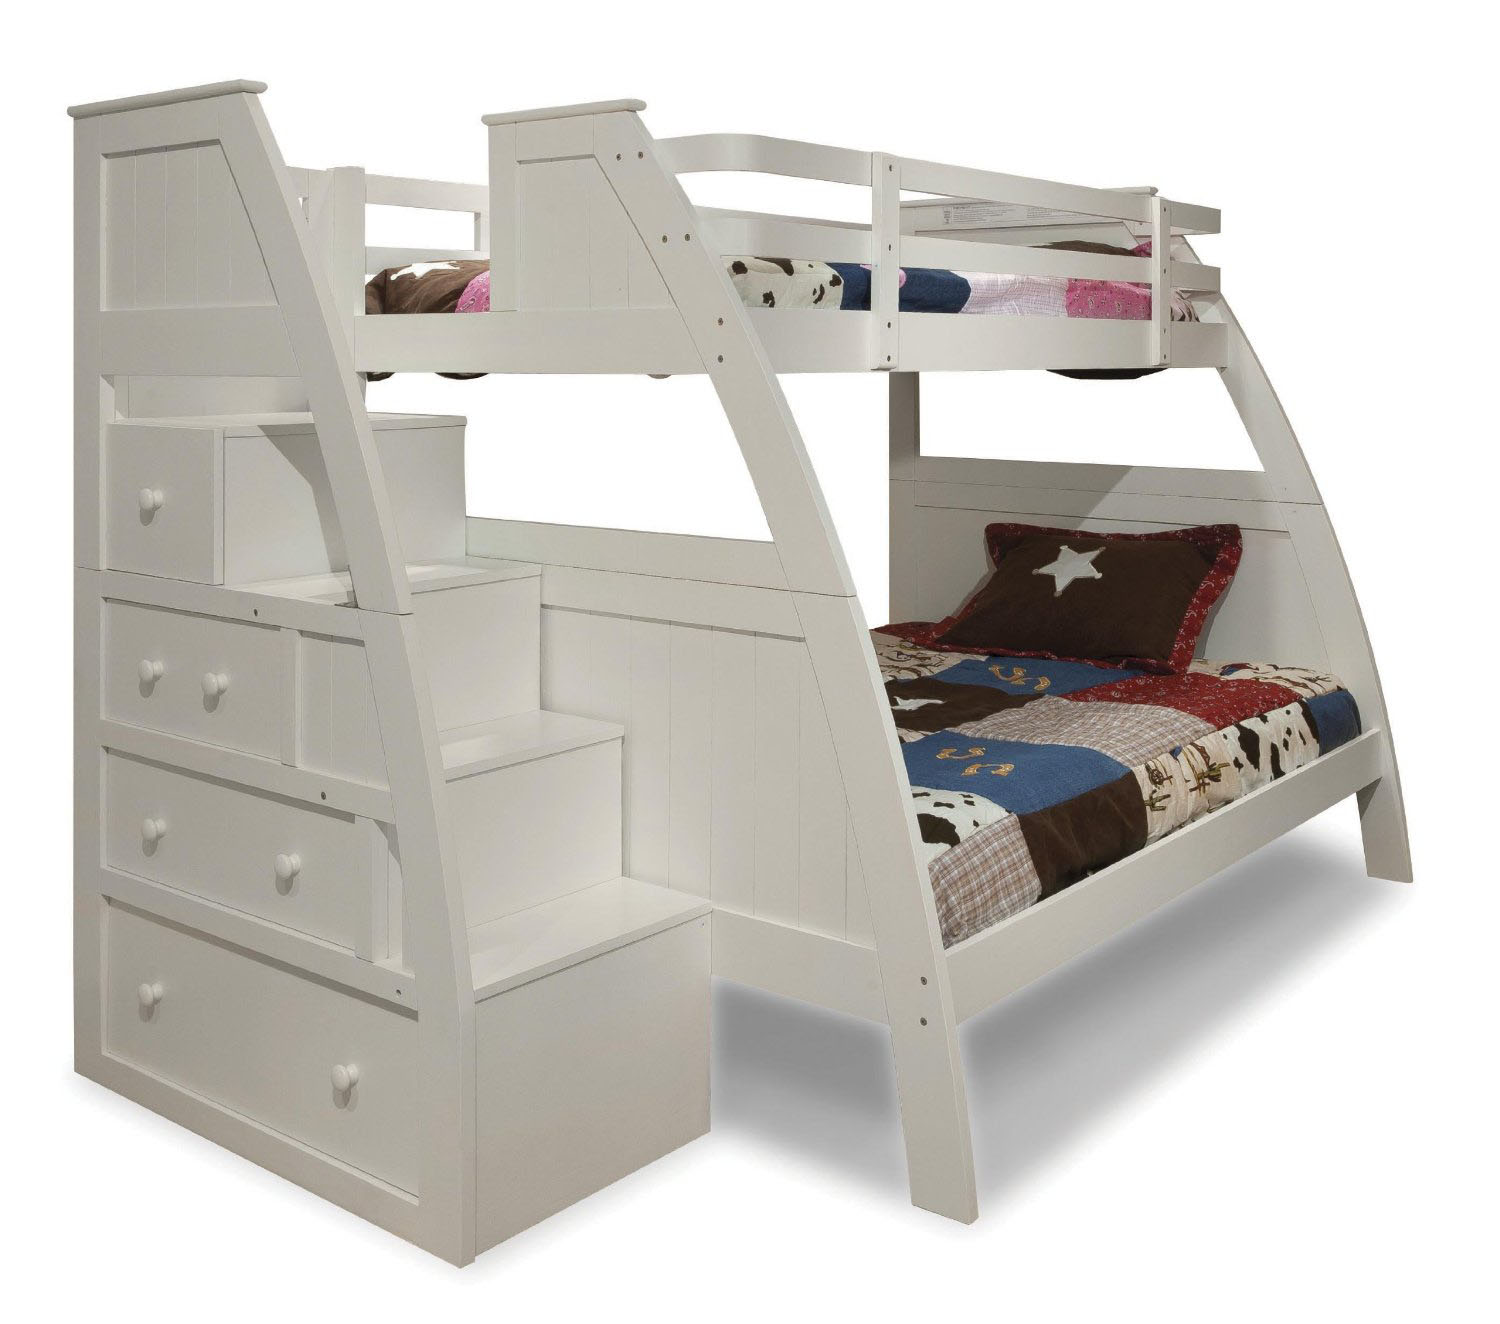 Buy Neutron Bunk Bed With Stair Storage White from our Storage Beds ...